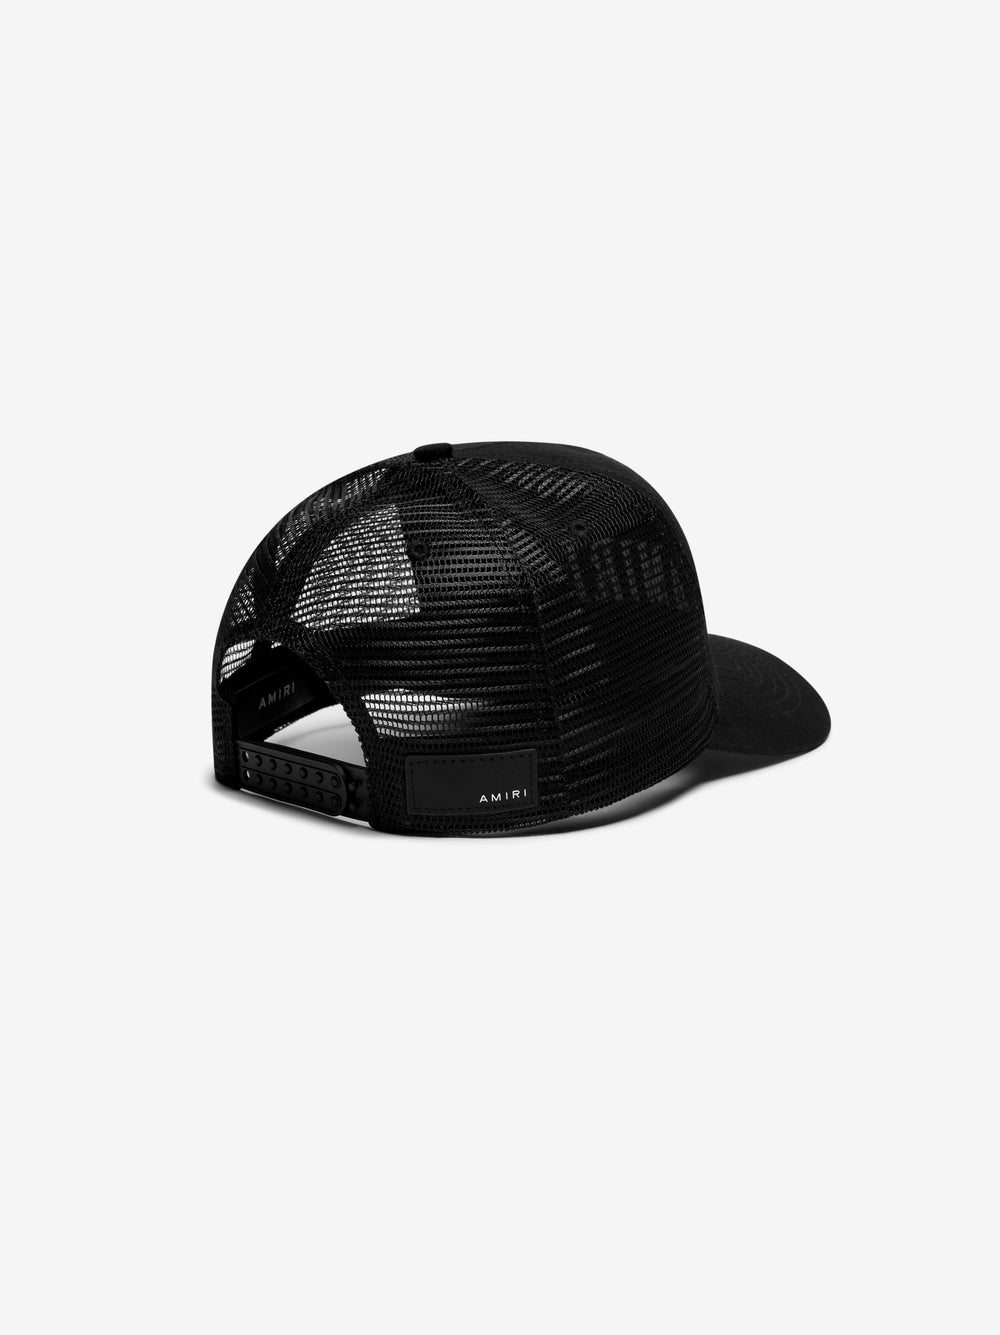 AMIRI CORE LOGO TRUCKER - Black / White